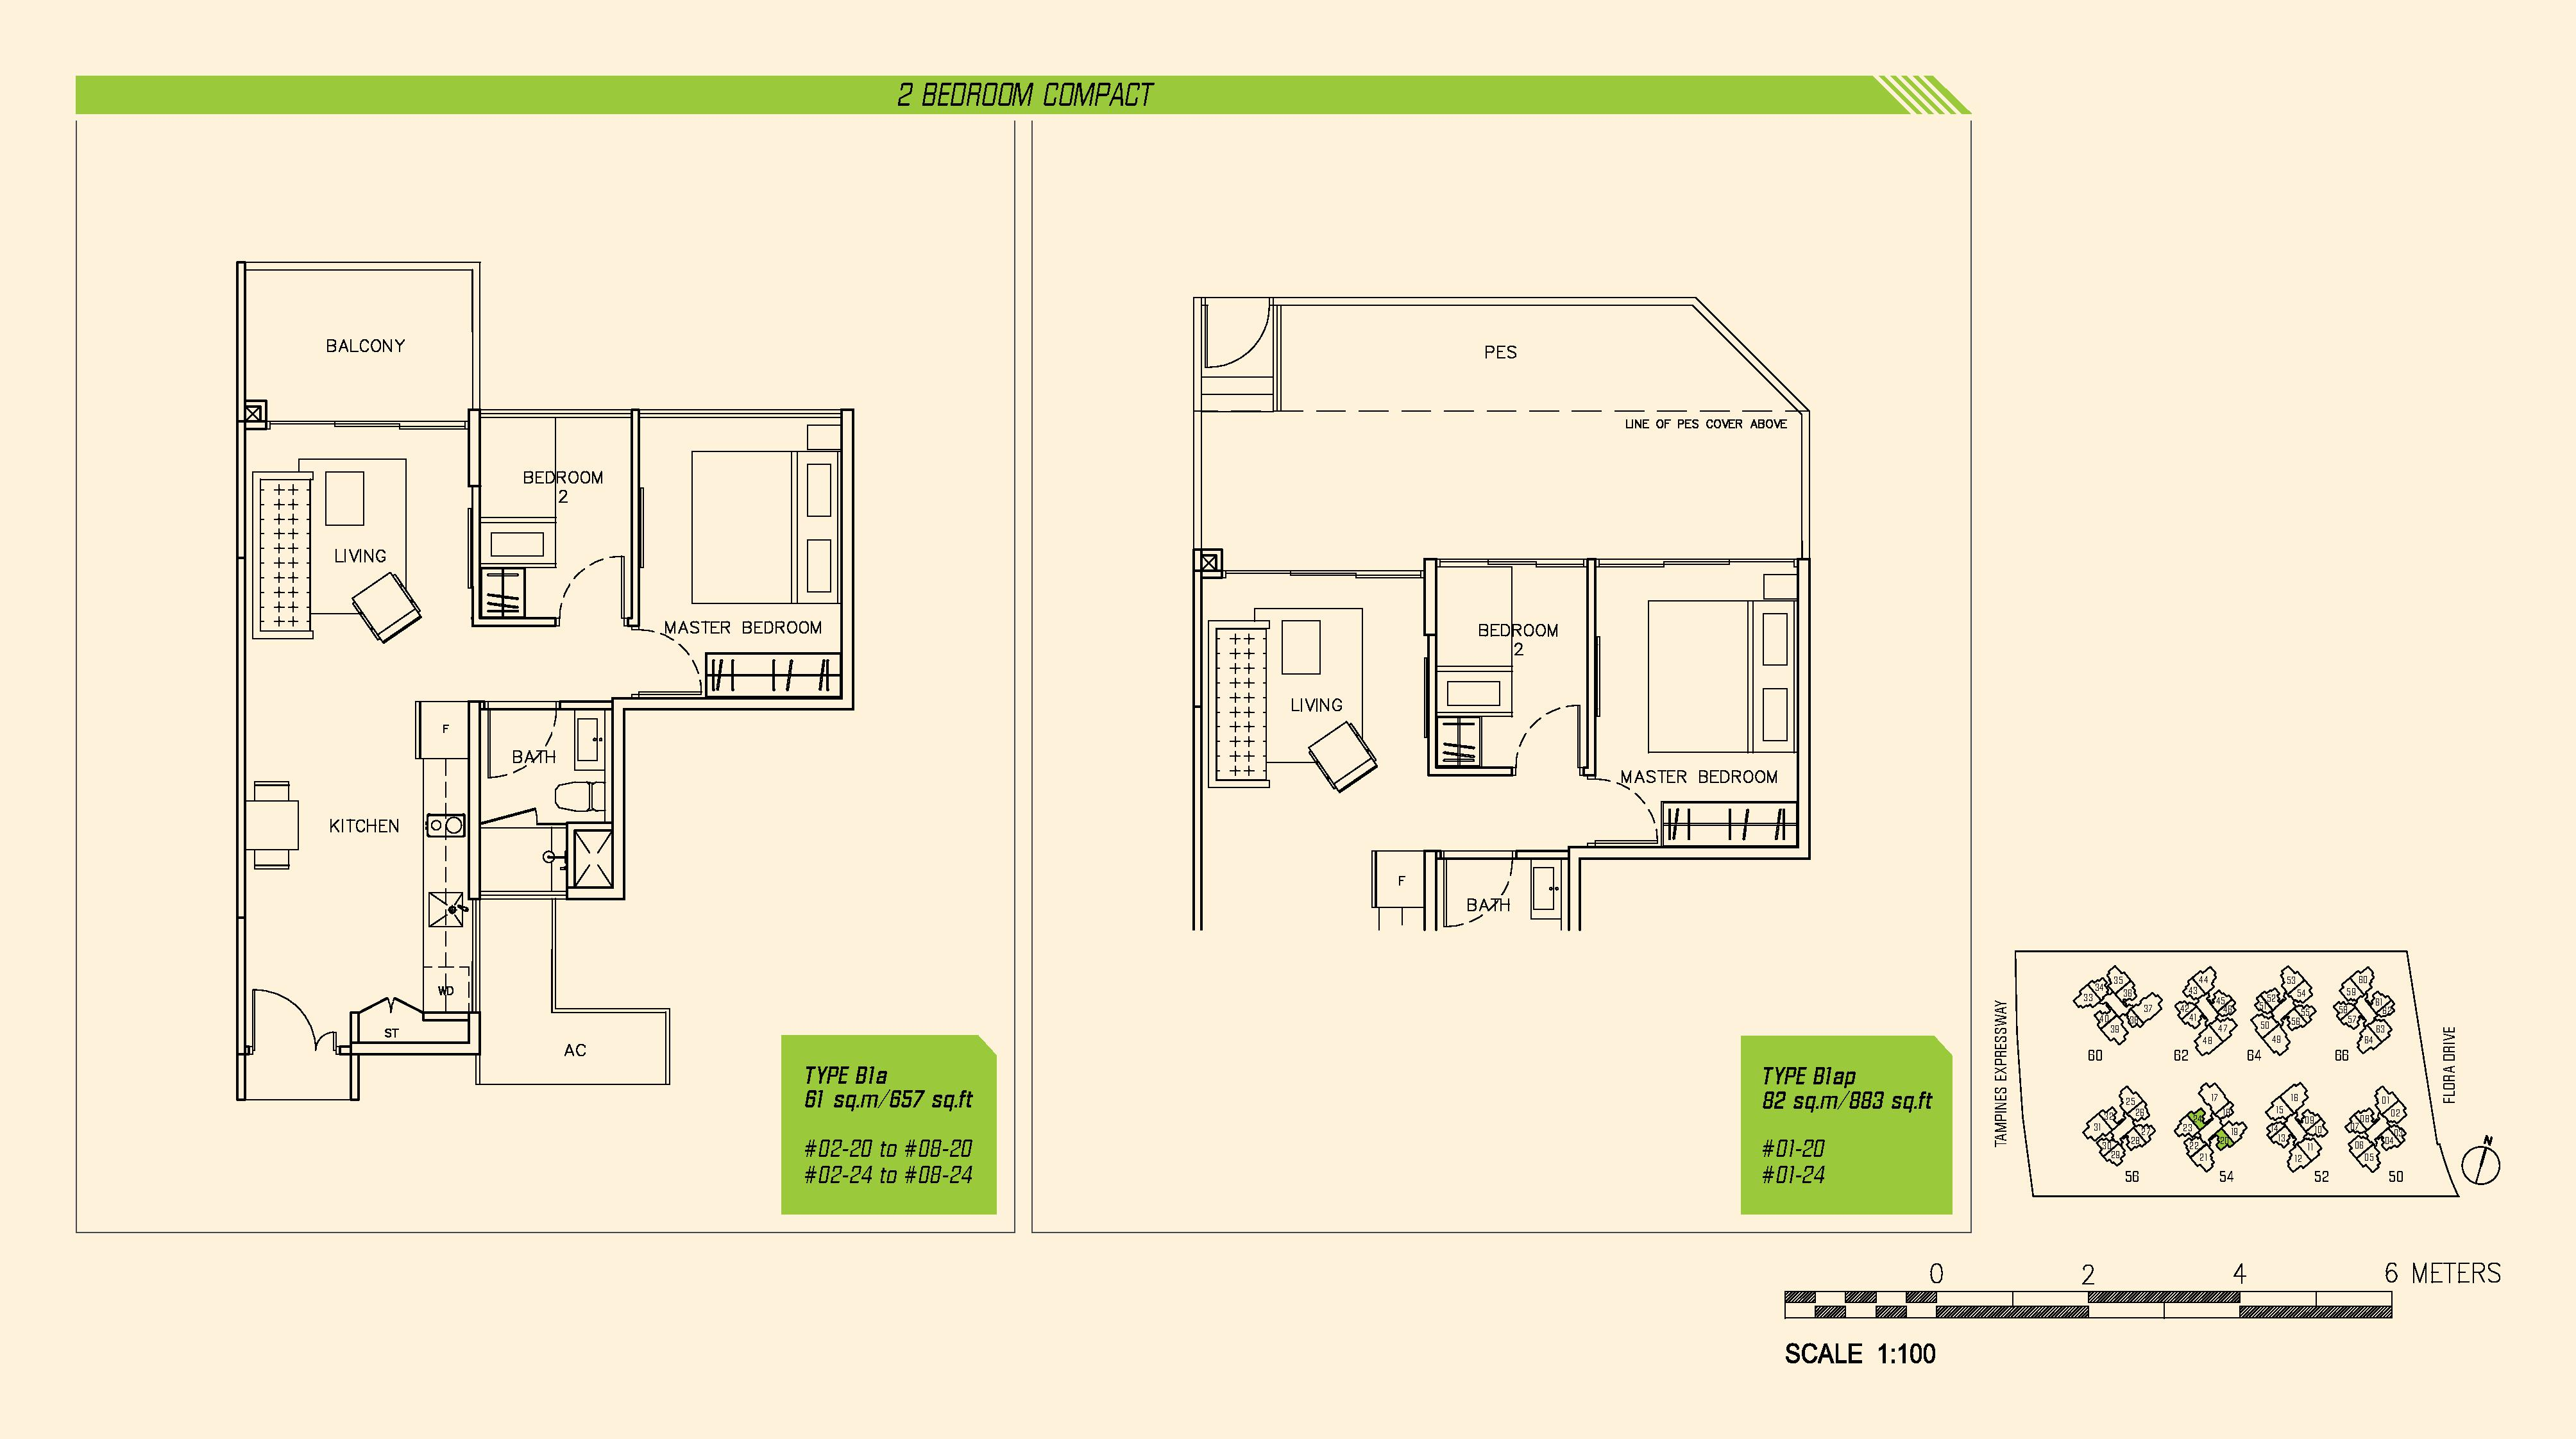 Parc Olympia 2 Bedroom Compact Floor Plans Type B1a and B1ap